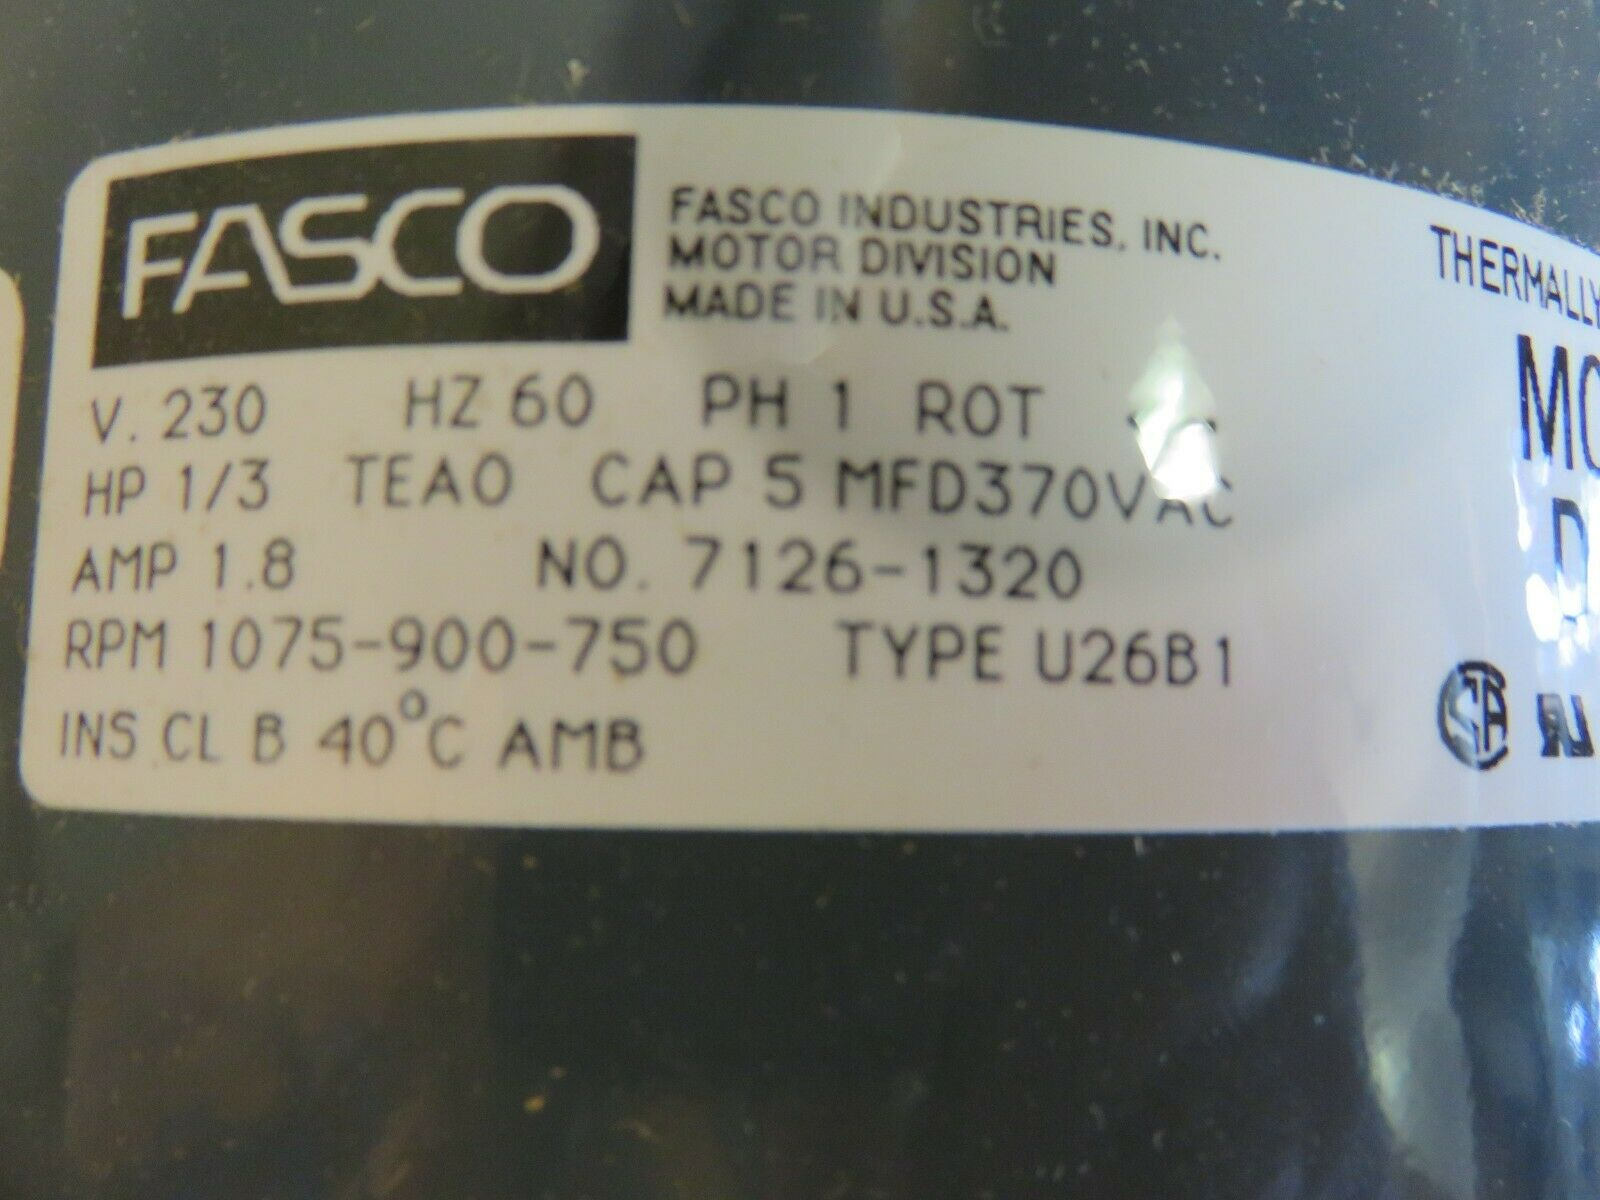 FASCO D836 ELECTRIC MOTOR 208-230V 1/3 HP PART# 7126-1320 on